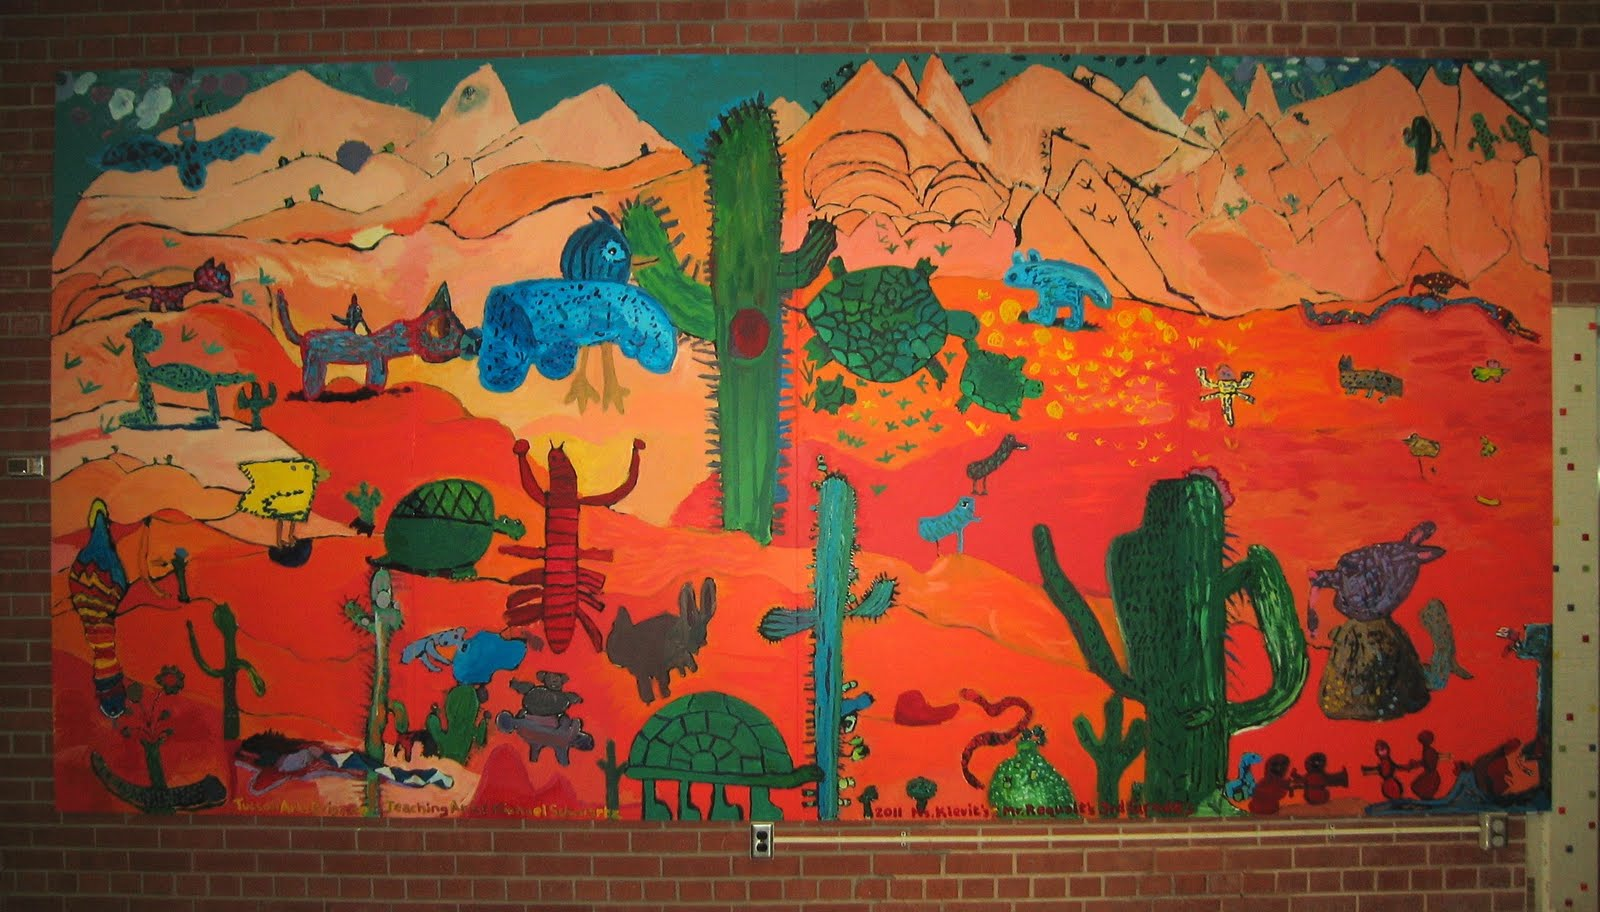 Tucson mural arts program dietz elementary school mural for Elementary school mural ideas